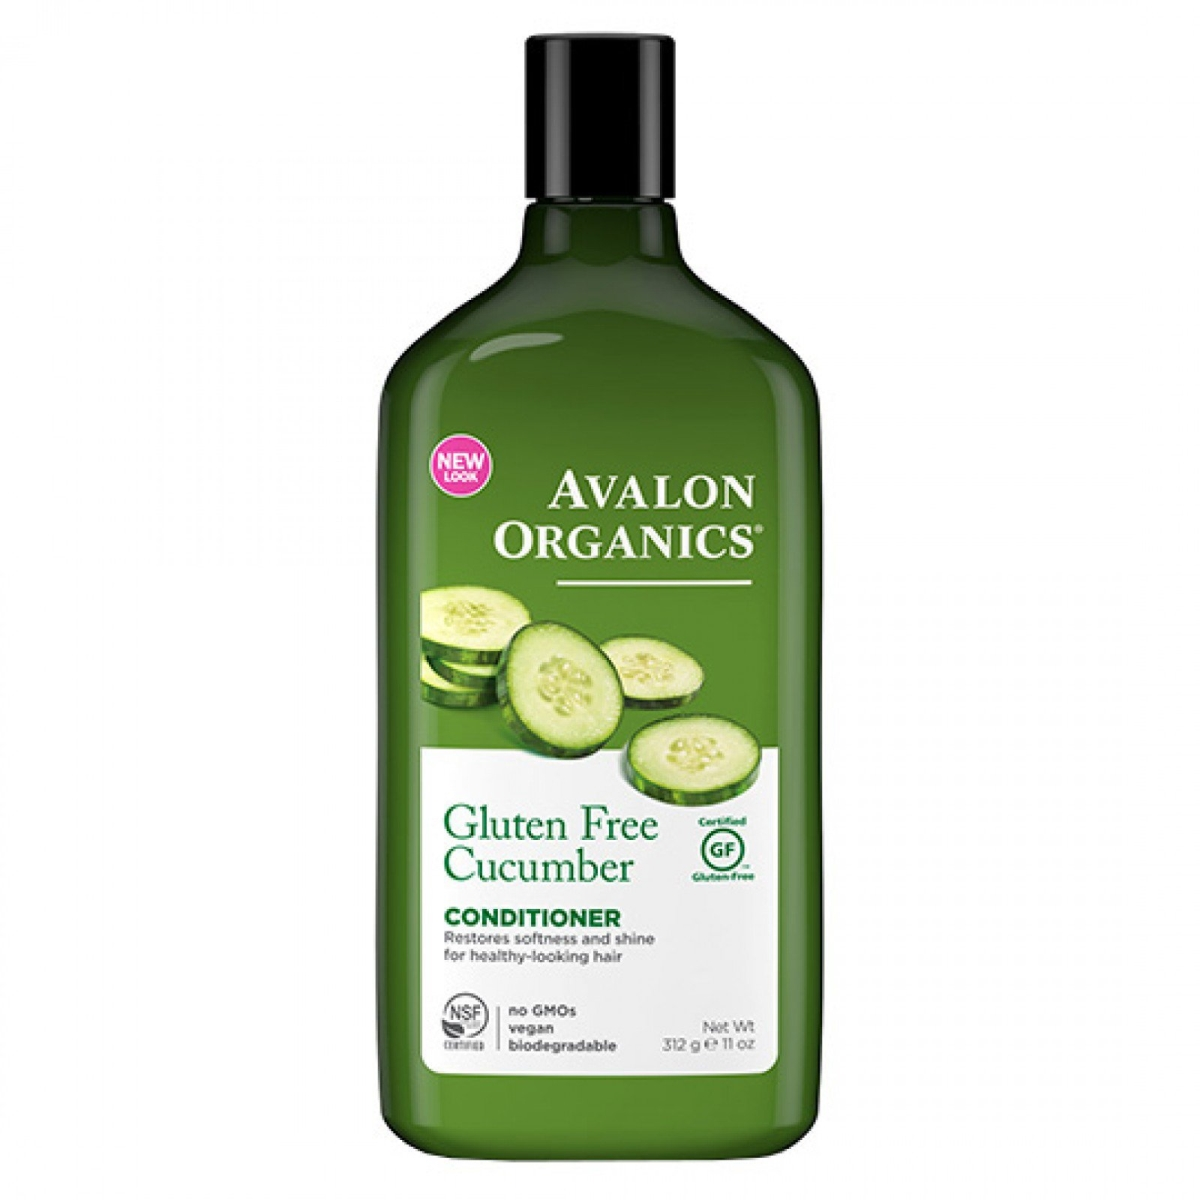 Frontier 230275 11 fl oz Avalon Organics Hair & Body Care Replenishing Cucumber Conditioner